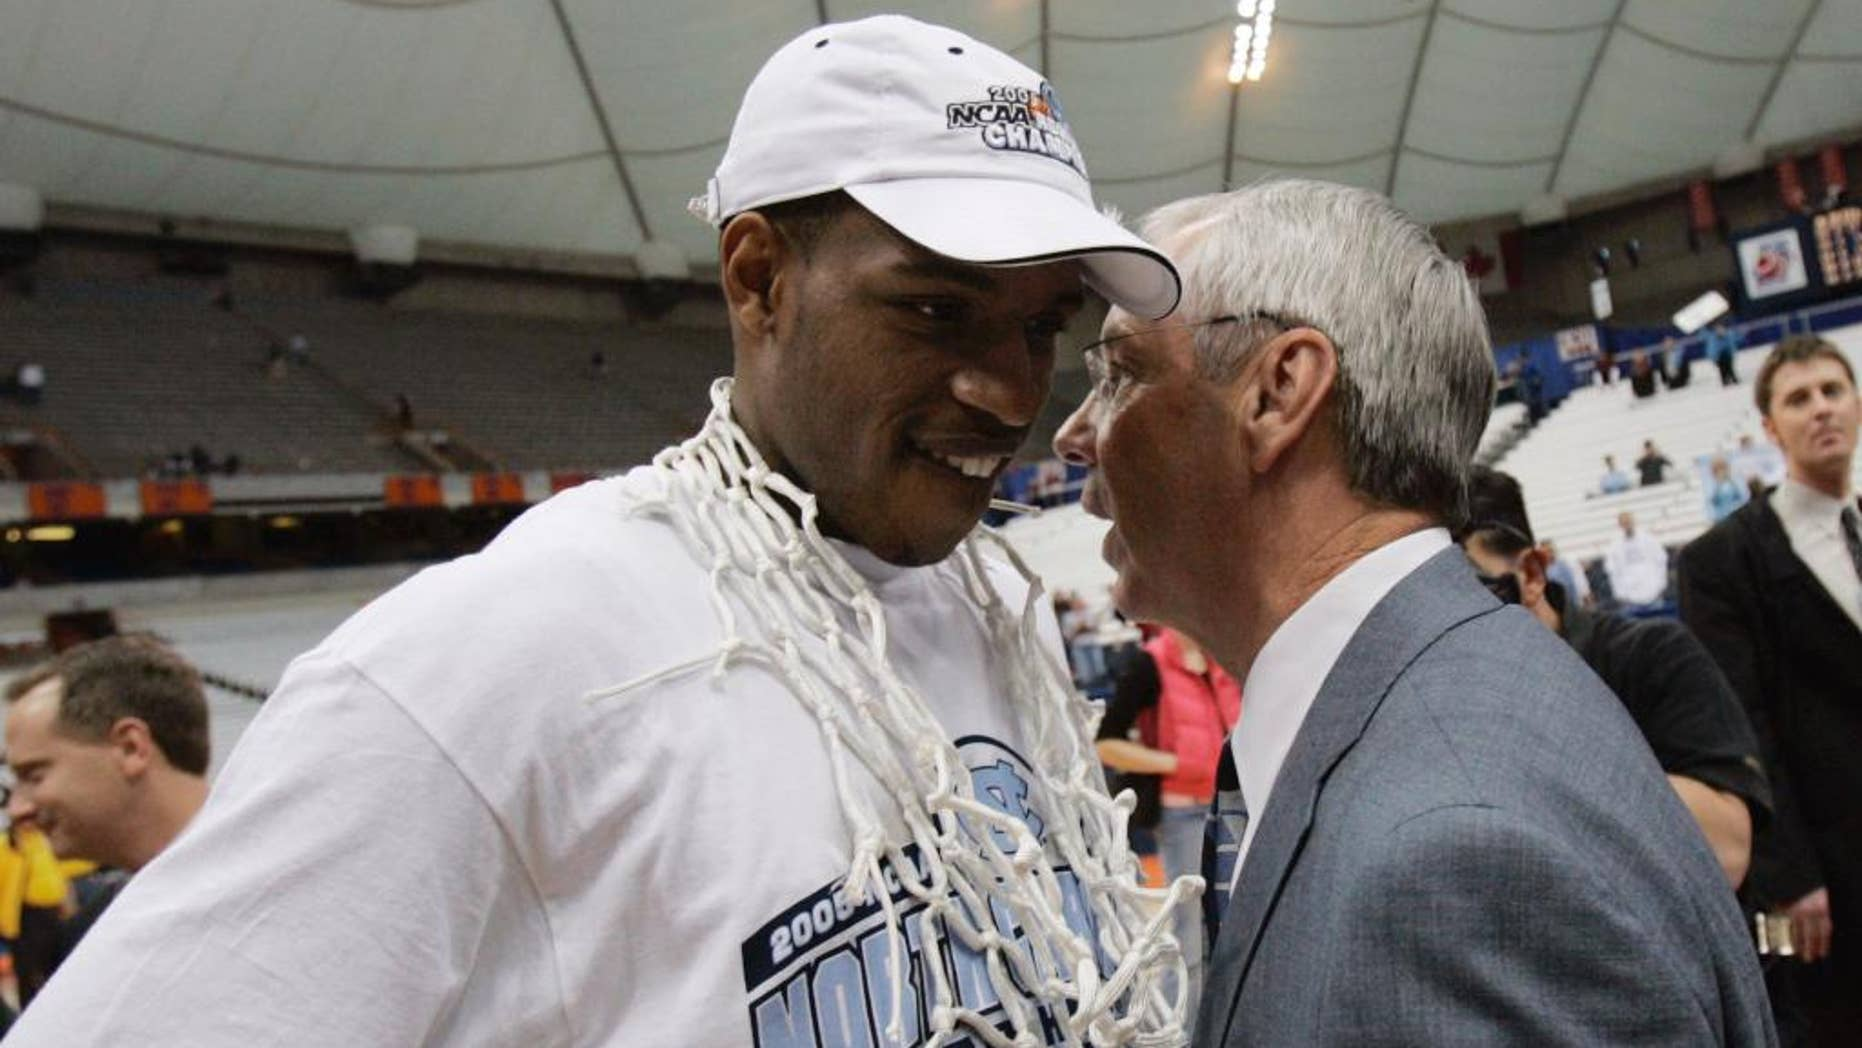 """File- This March 27, 2005, file photo shows North Carolina coach Roy Williams chatting with Rashad McCants after defeating Wisconsin 88-82 to win the NCAA East Regional in Syracuse, N.Y.  Williams denied allegations of academic wrongdoing Friday, June 6, 2014, by former player McCants connected to the school's long-running academic scandal. In an interview with ESPN's """"Outside the Lines"""" to air Friday, McCants, the second-leading scorer on Williams' first NCAA championship team in 2005, said tutors wrote papers for him and that Williams knew about no-show classes popular with athletes.  (AP Photo/David Duprey, File)"""